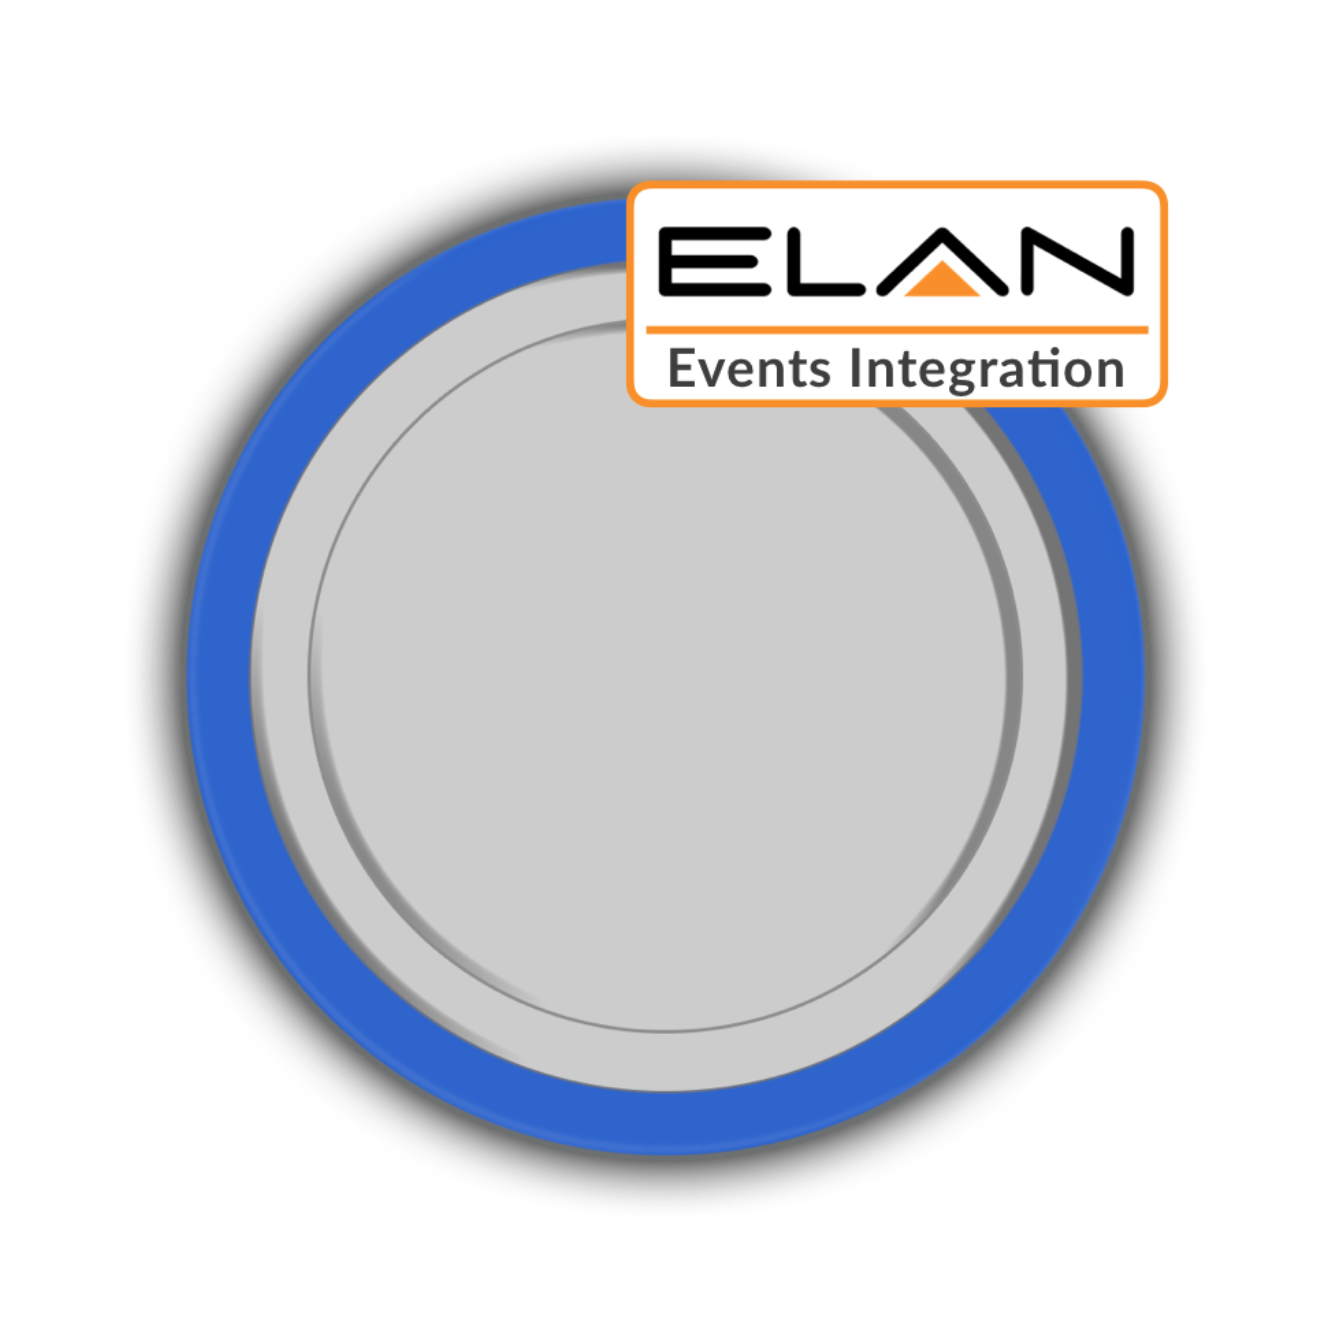 When someone pushes the doorbell button, the Elan system instantly receives an event from Ring to perform a variety home automation routines.